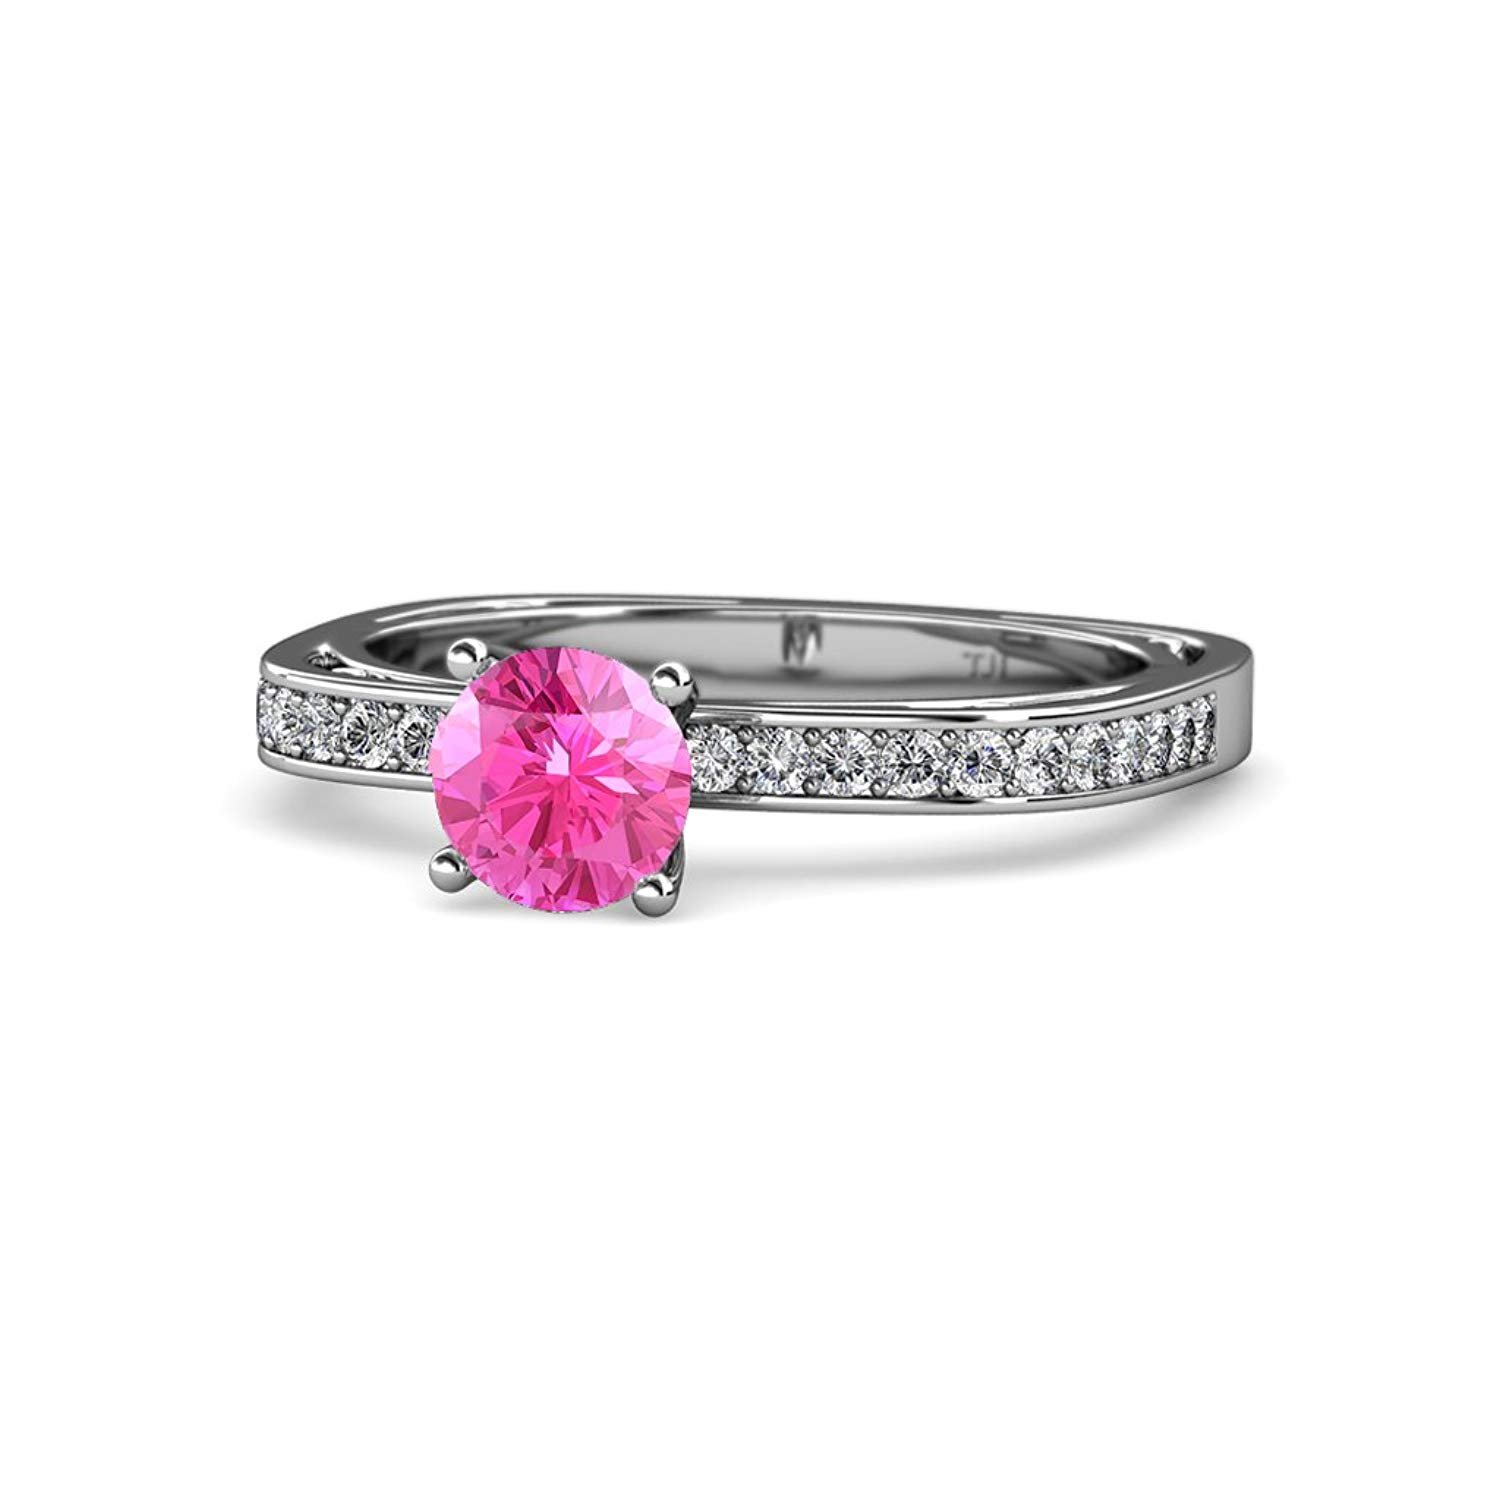 Pink Sapphire and Diamond (SI2-I1, G-H) Euro Shank Engagement Ring 1.05 ct tw 14K White Gold.size 4.5 by TriJewels